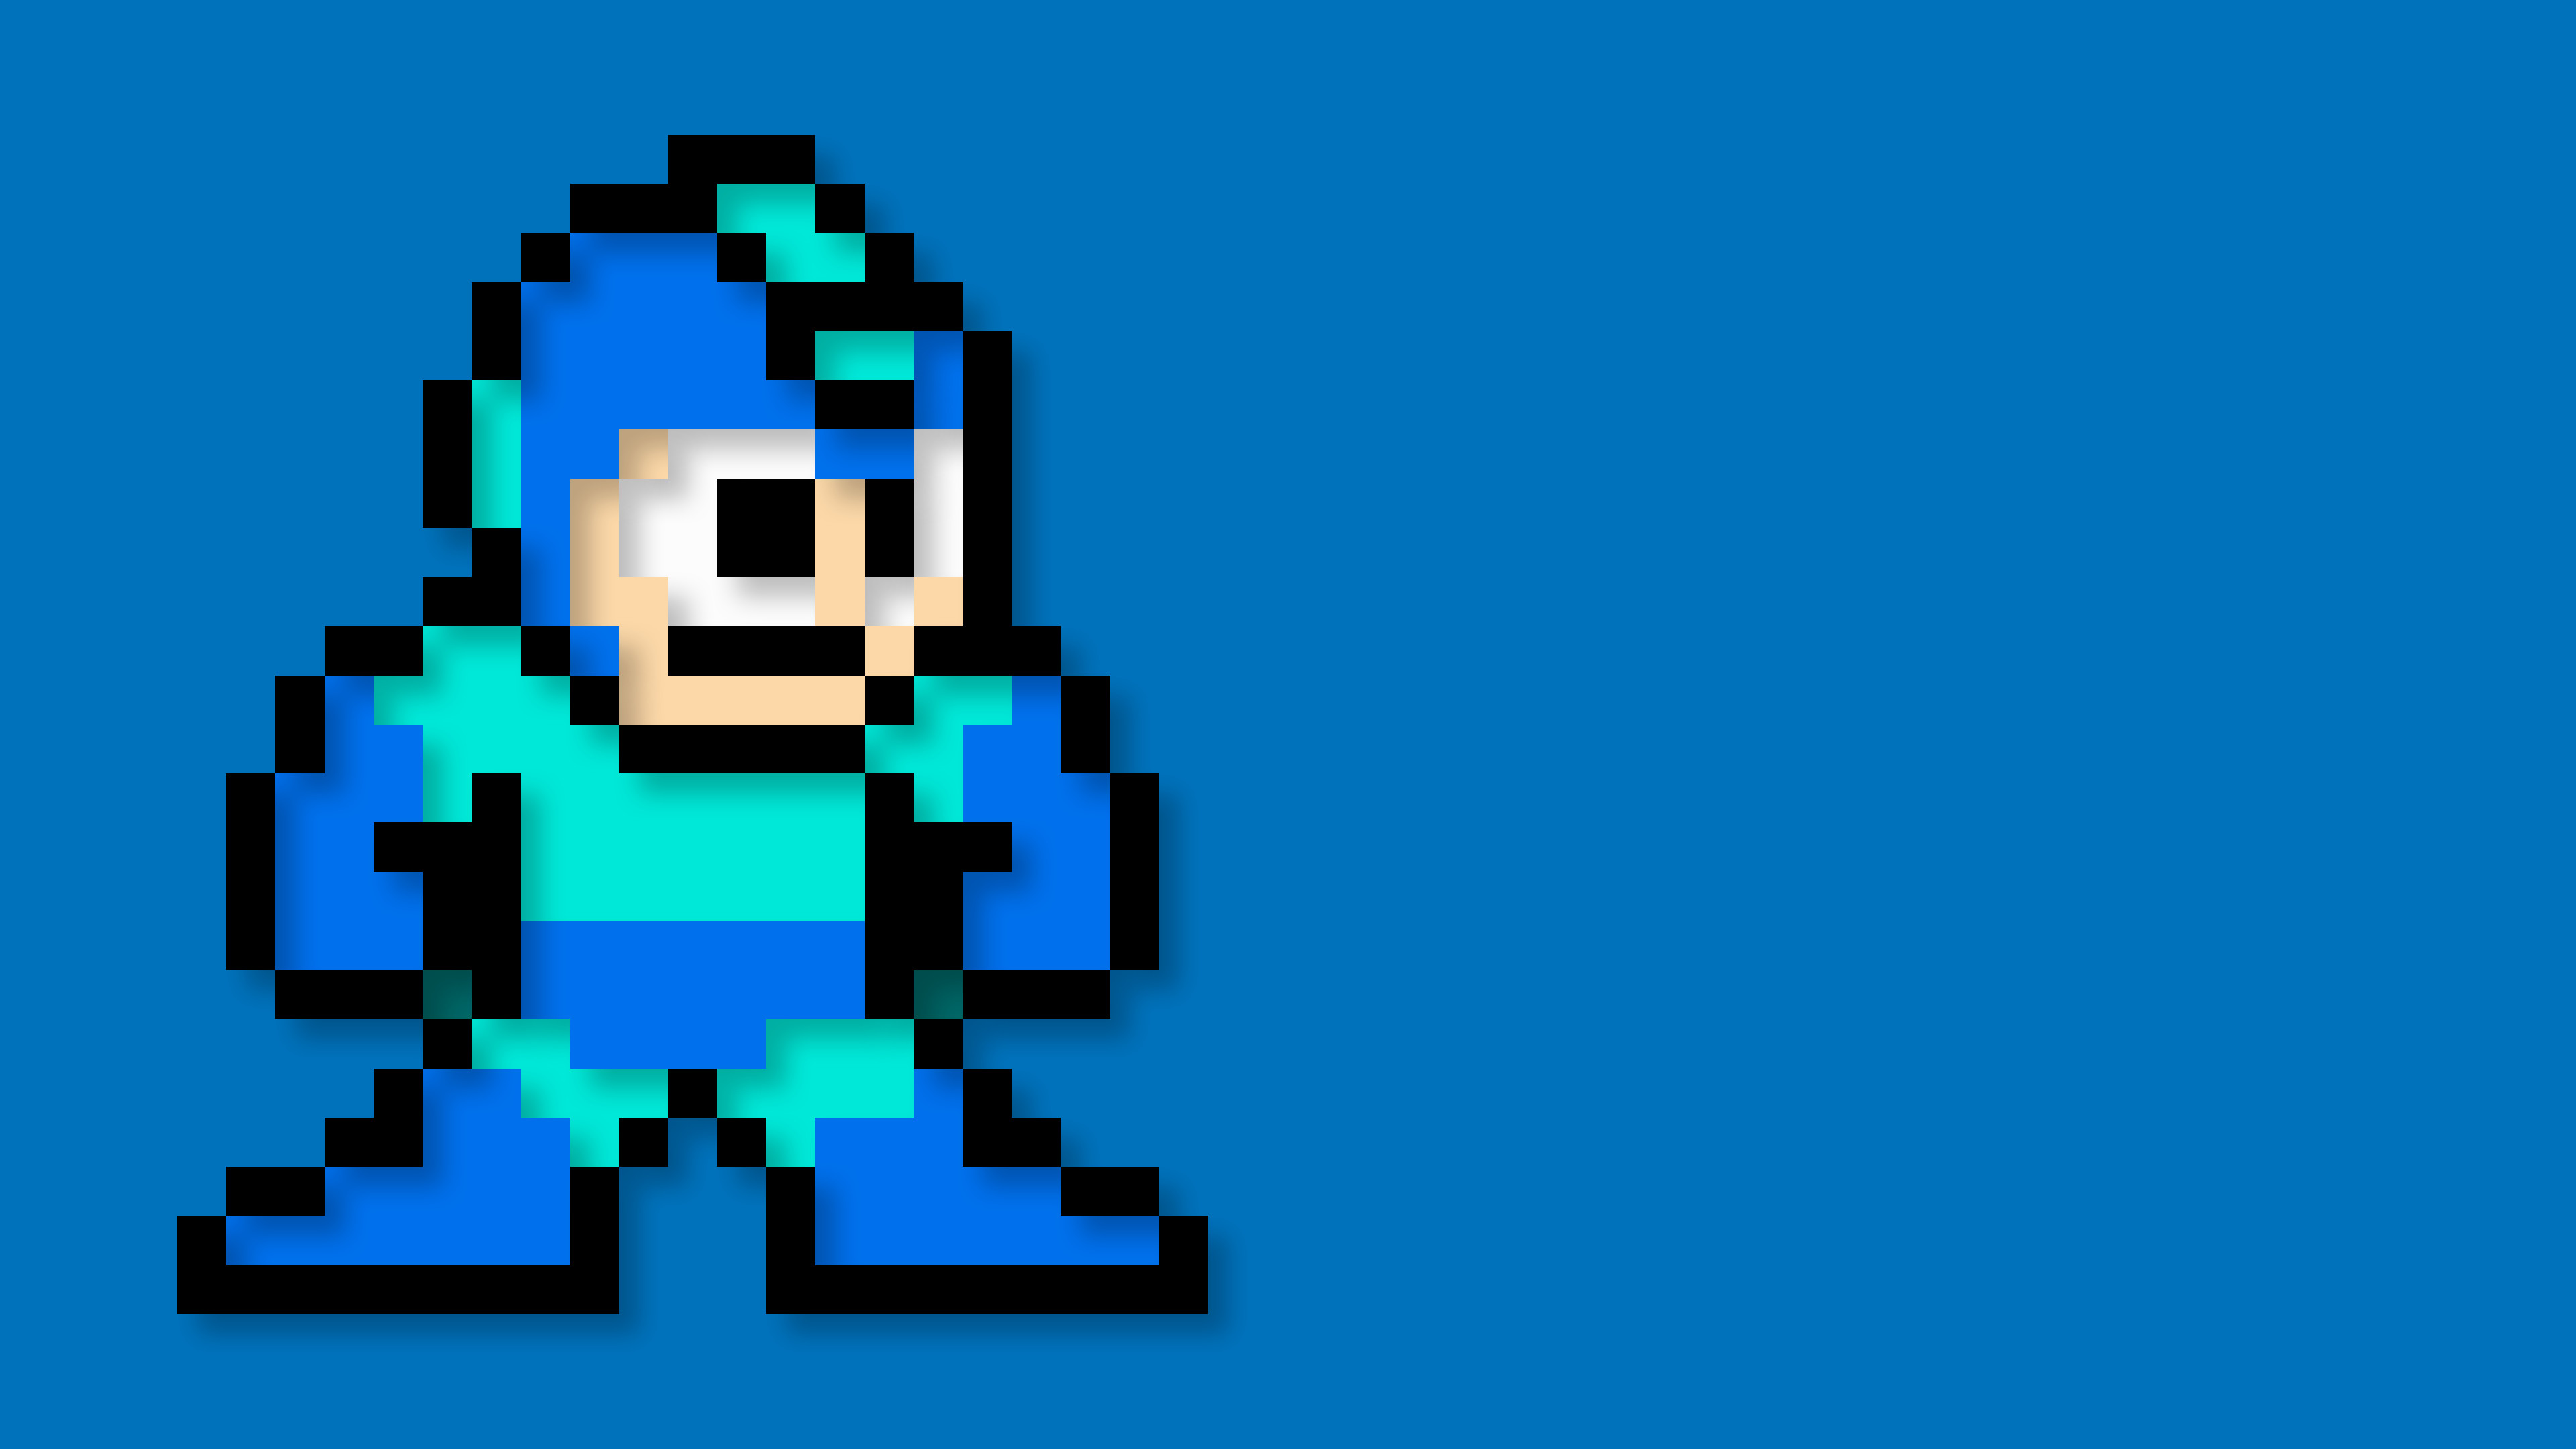 8 Bit Iphone X Wallpaper Megaman Wallpaper 73 Images